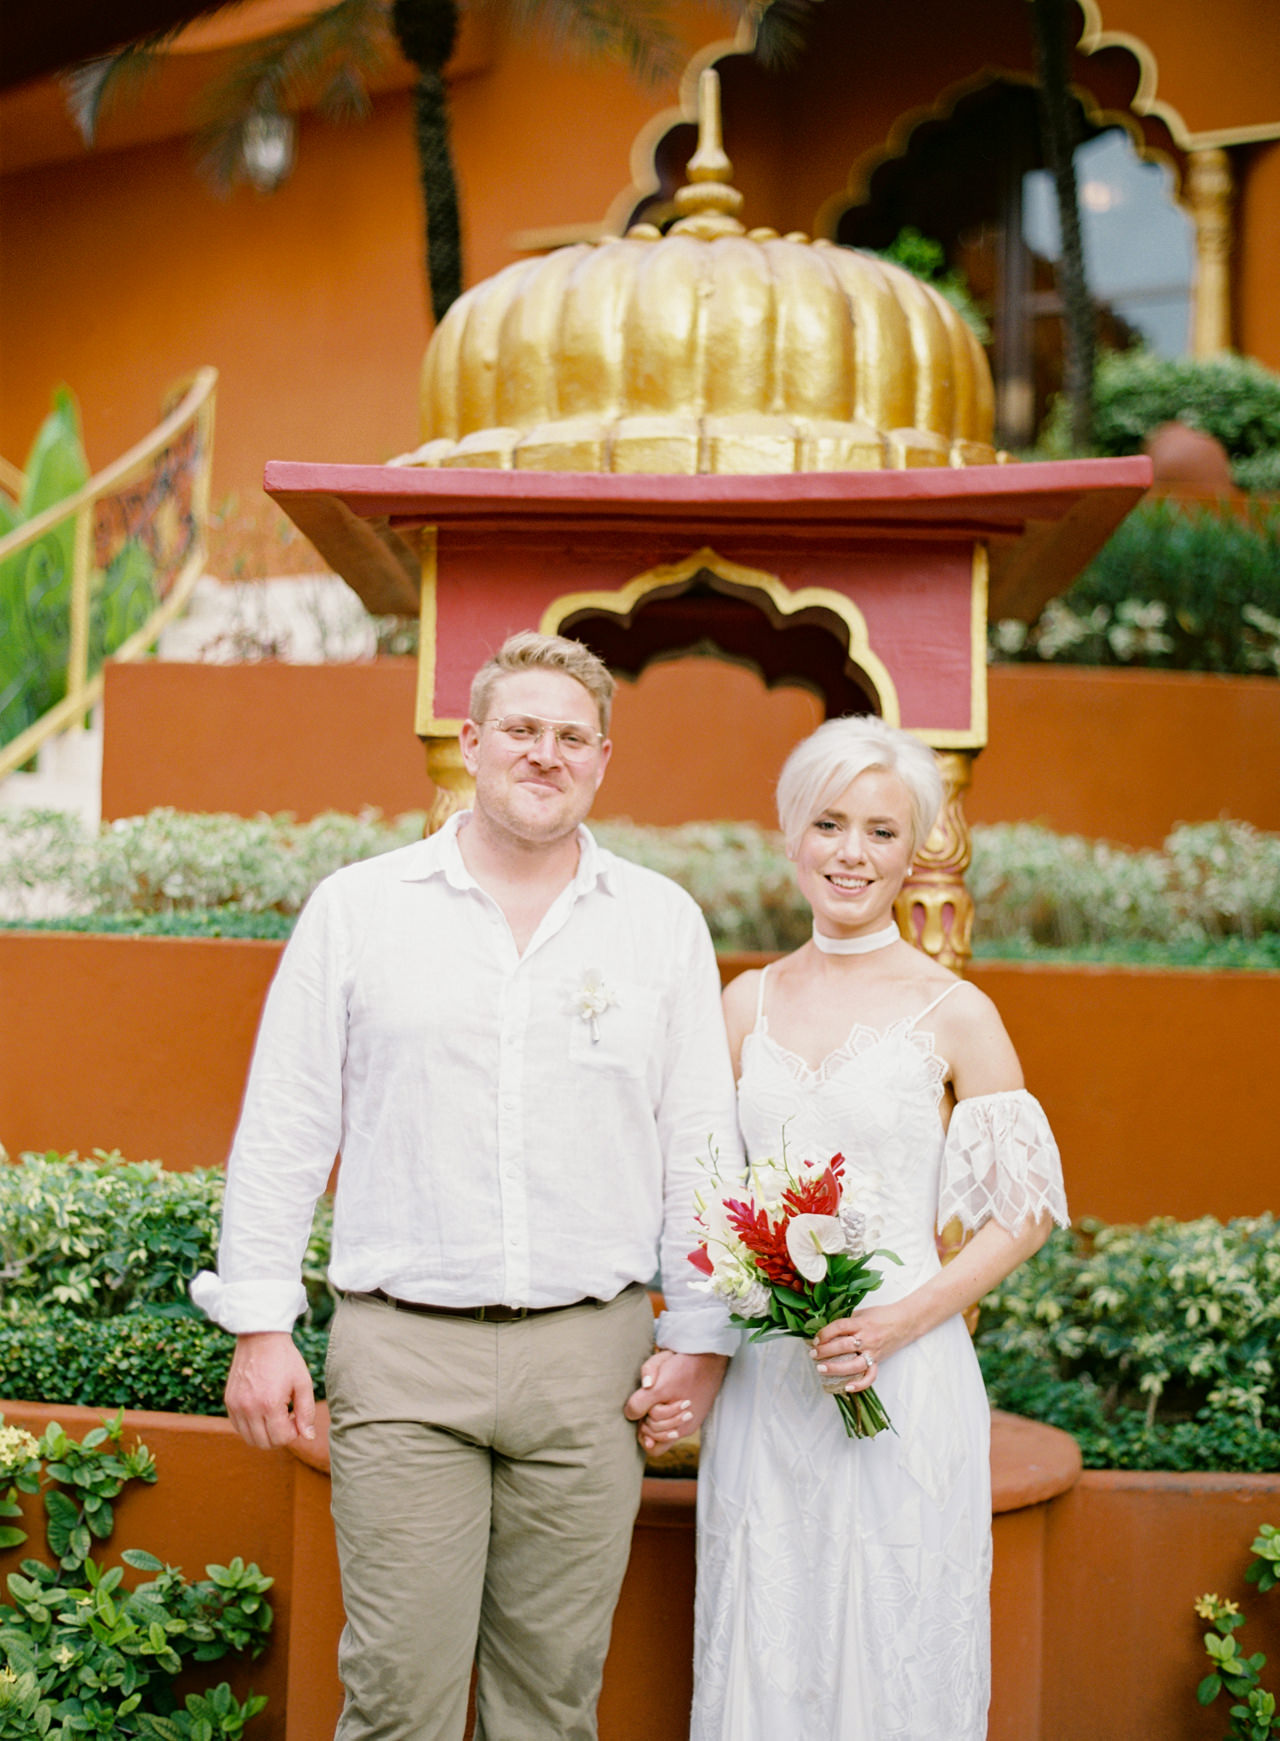 Bali Wedding Inspiration with an Indian & Middle Eastern Exotic Architecture 14